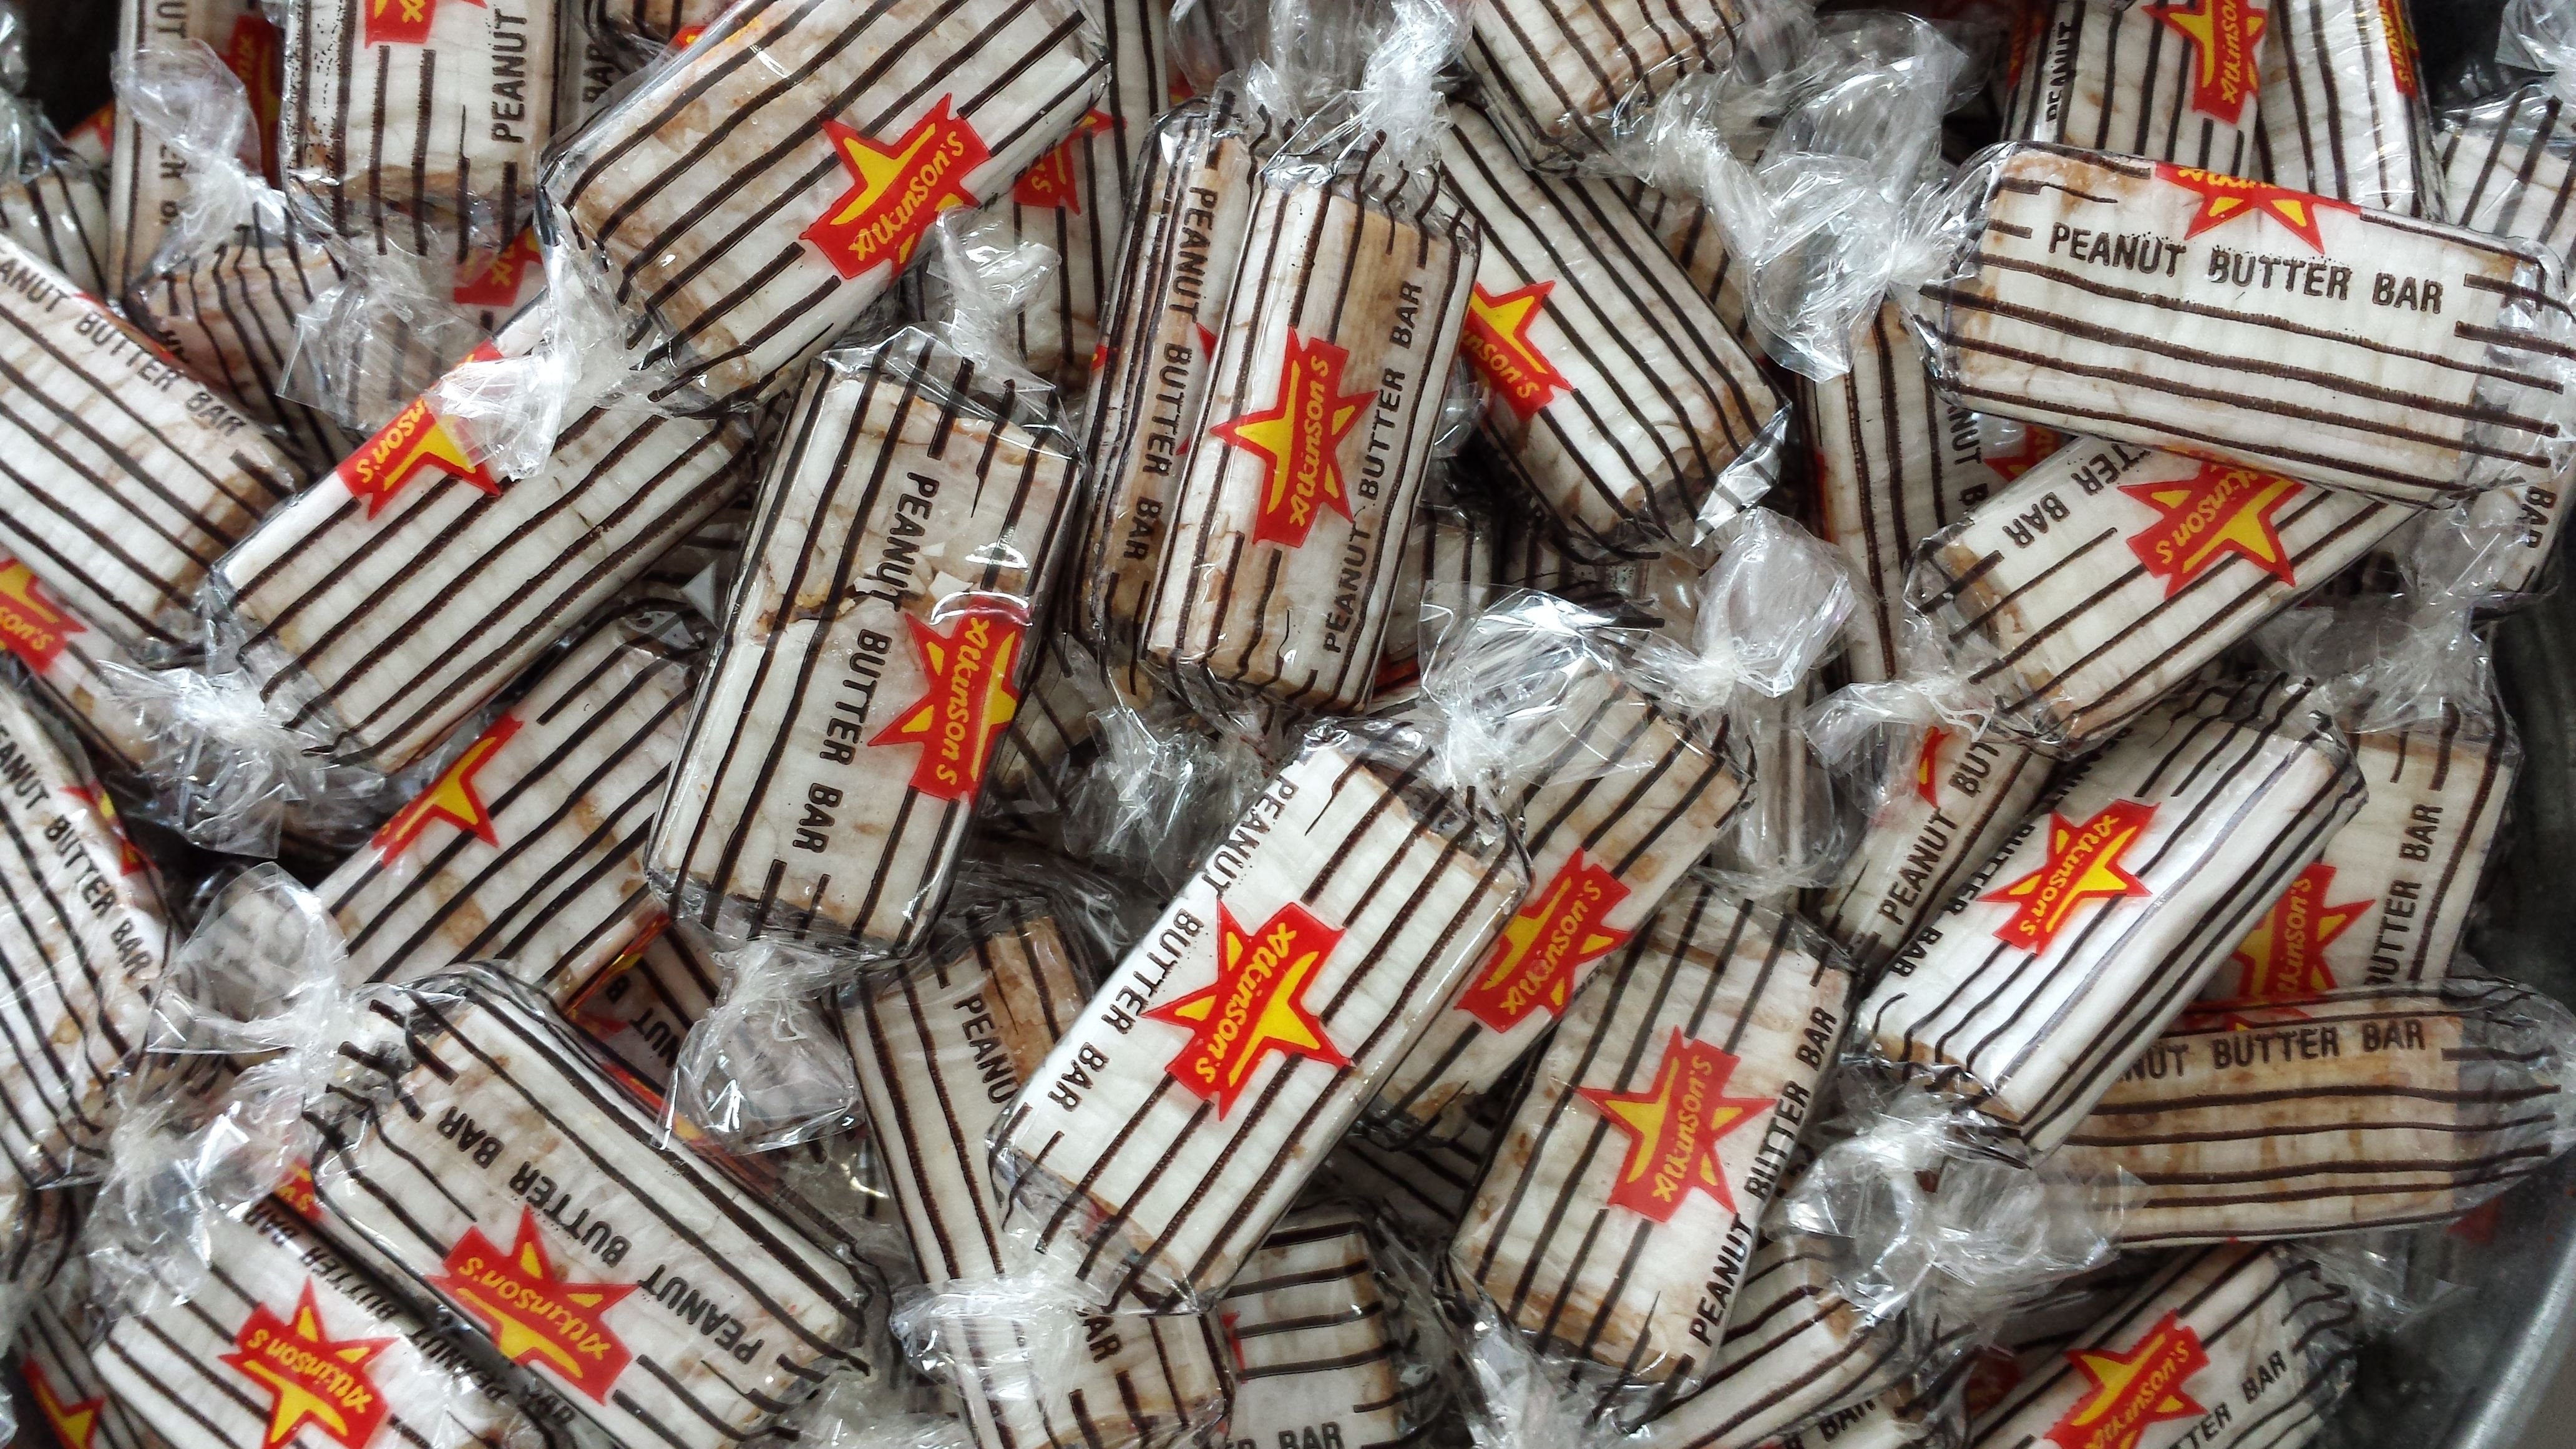 In 1938 a confectionery company began in Lufkin, Texas  Atkinson